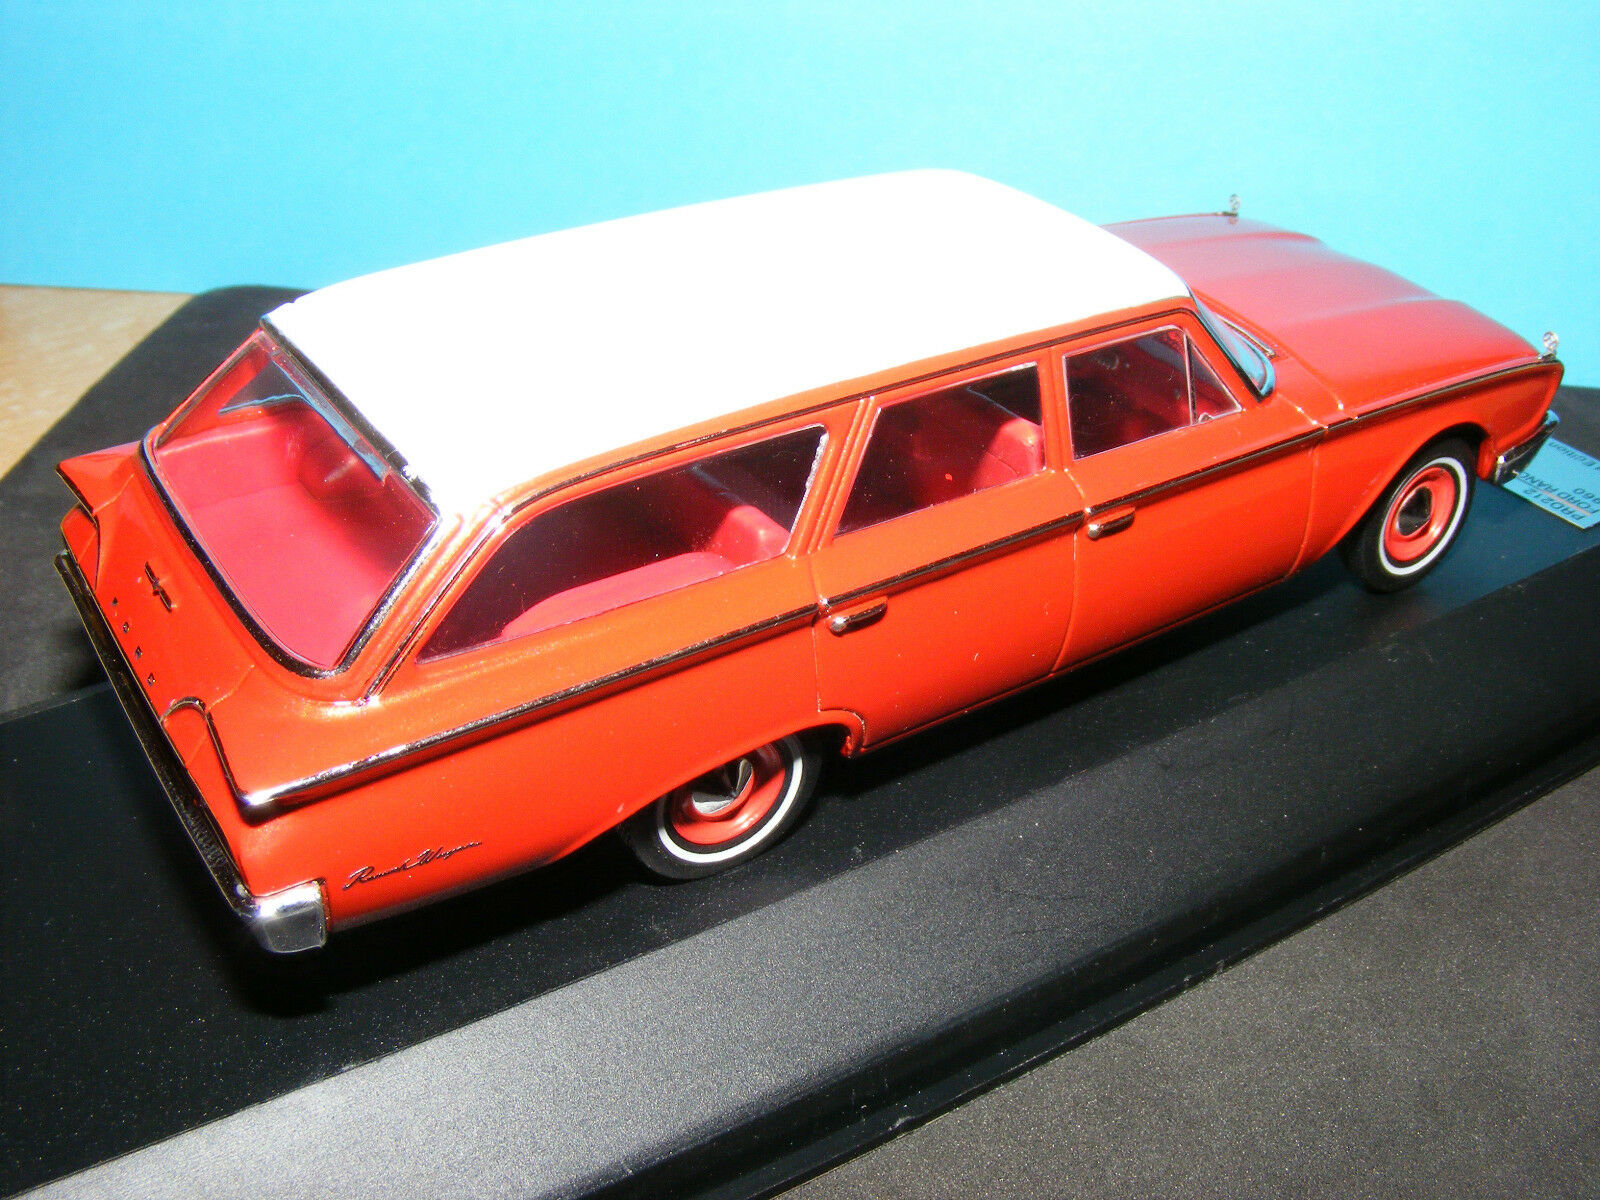 Ford Country Squire Estate Car an American Ford in Red 1 43rd. Scale  Premium X